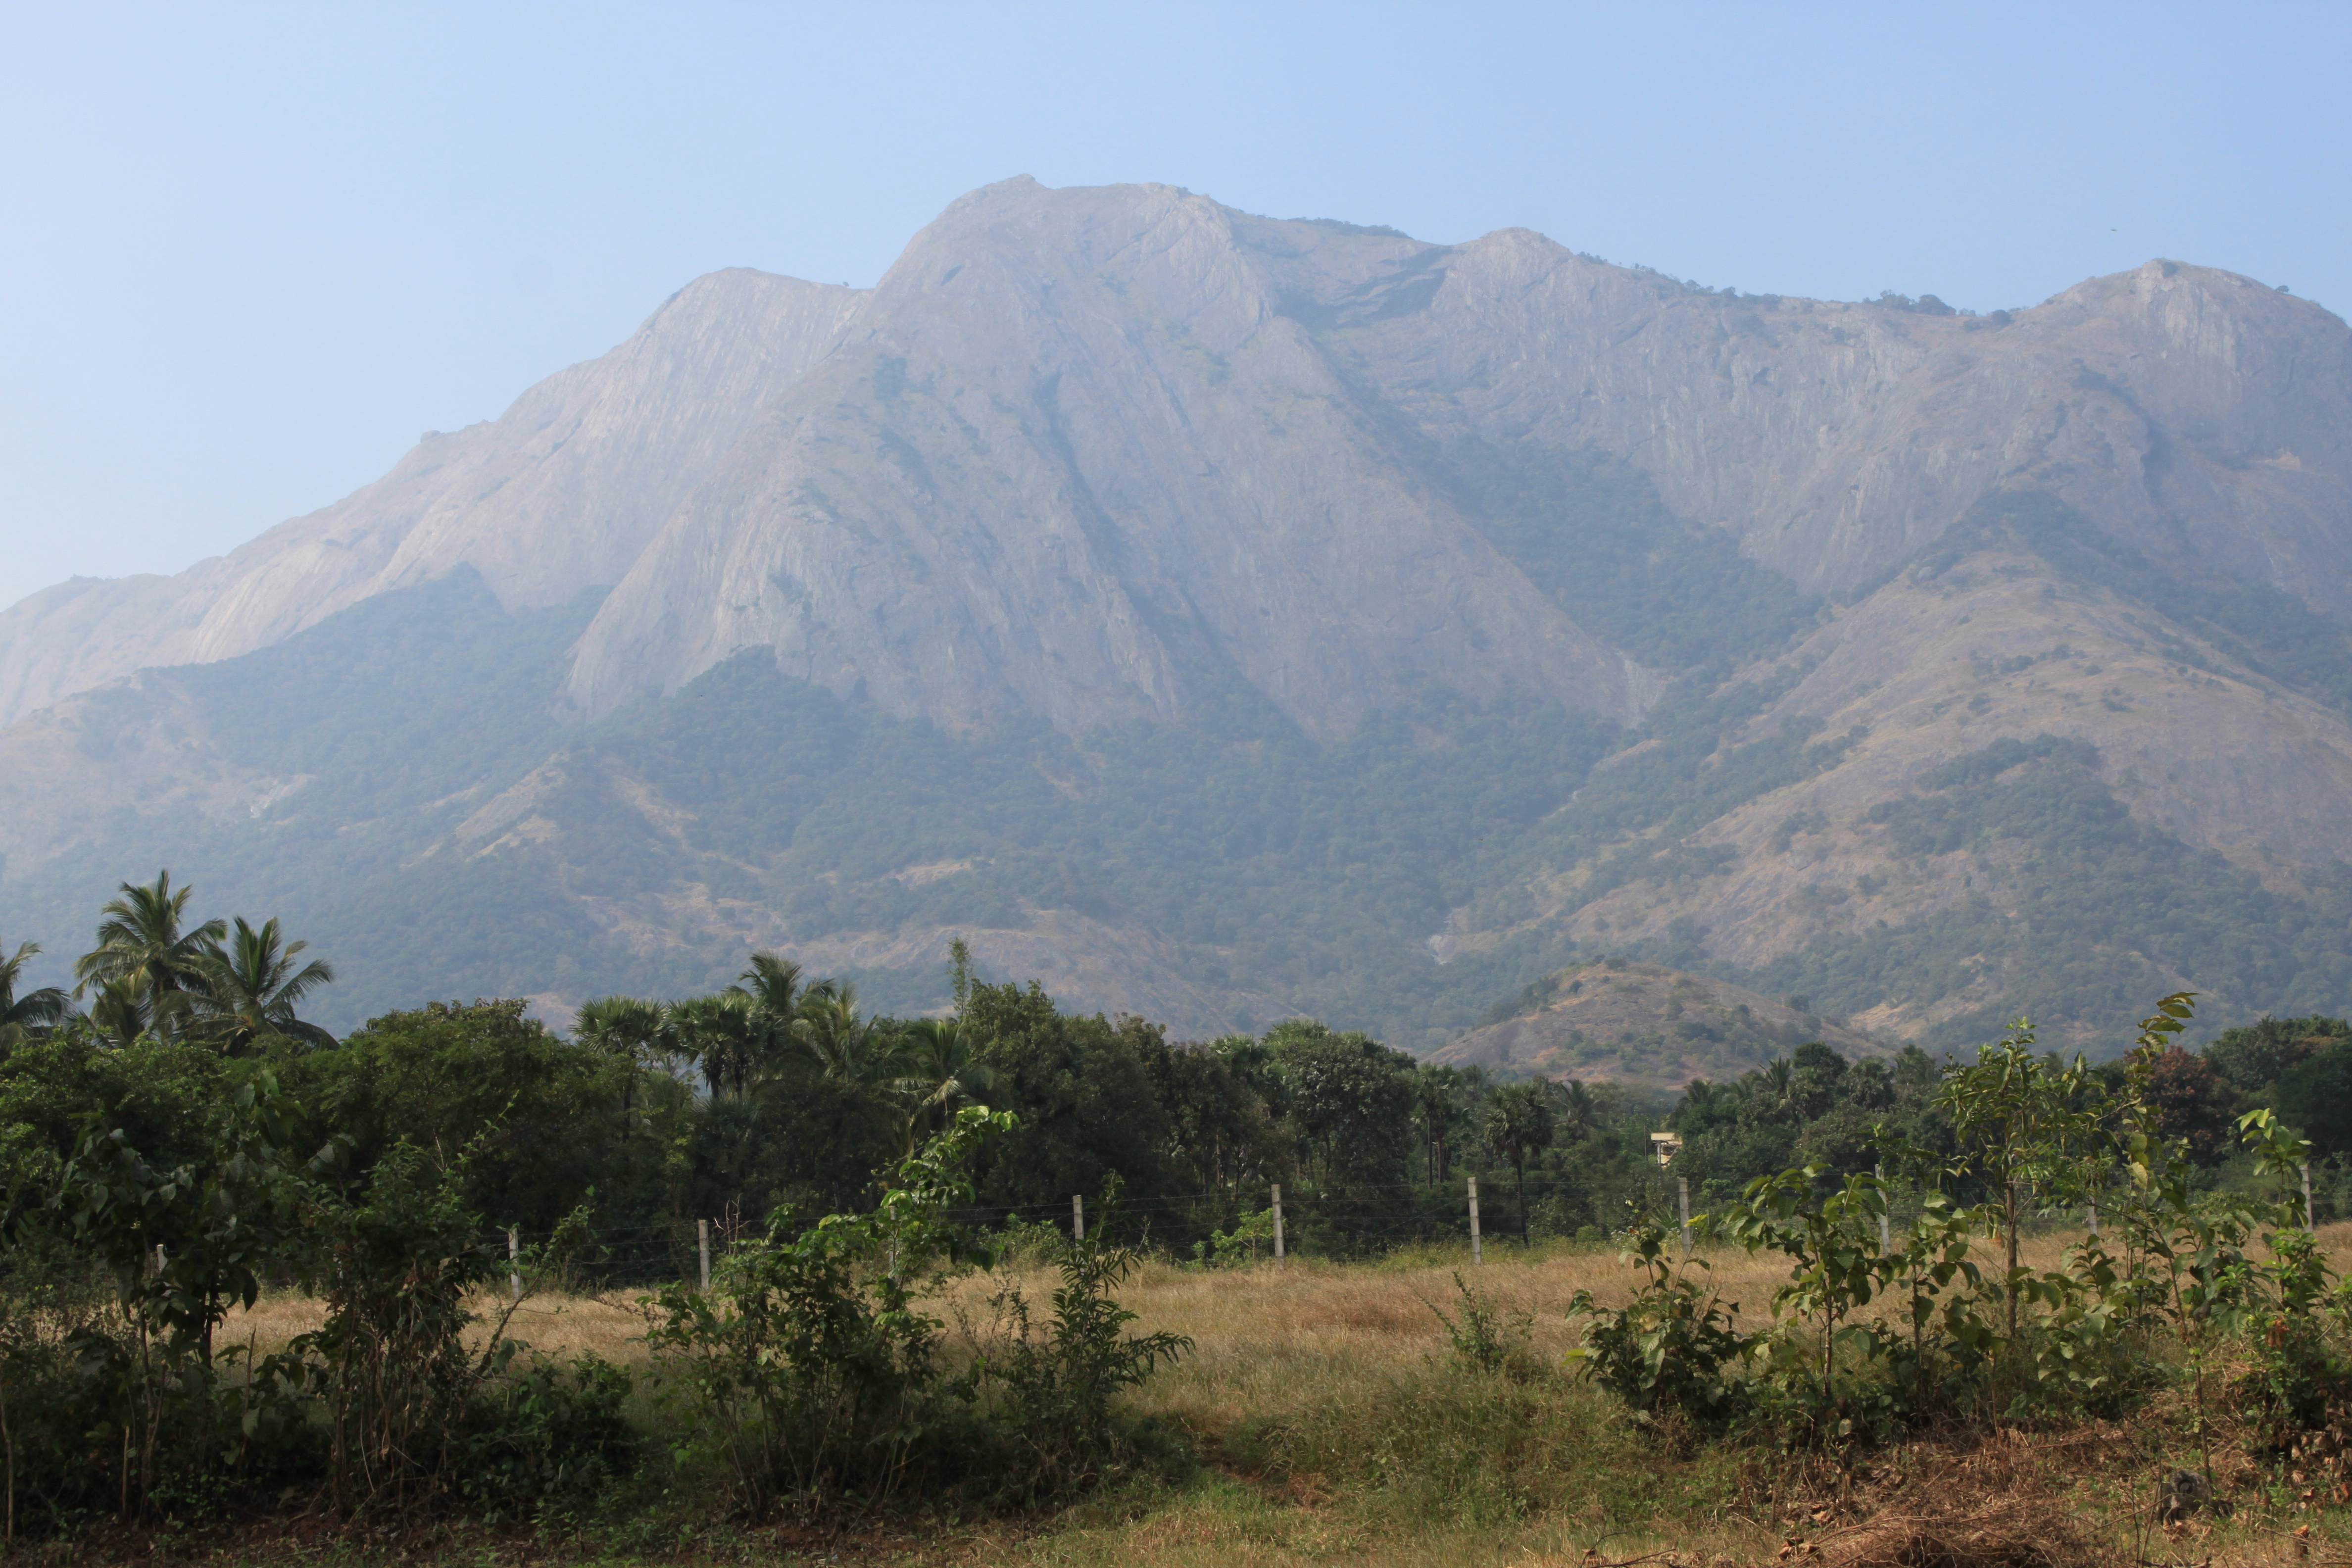 Coimbatore India  city photos gallery : The Majestic Western Ghats along the Palakkad Coimbatore Hwy 47